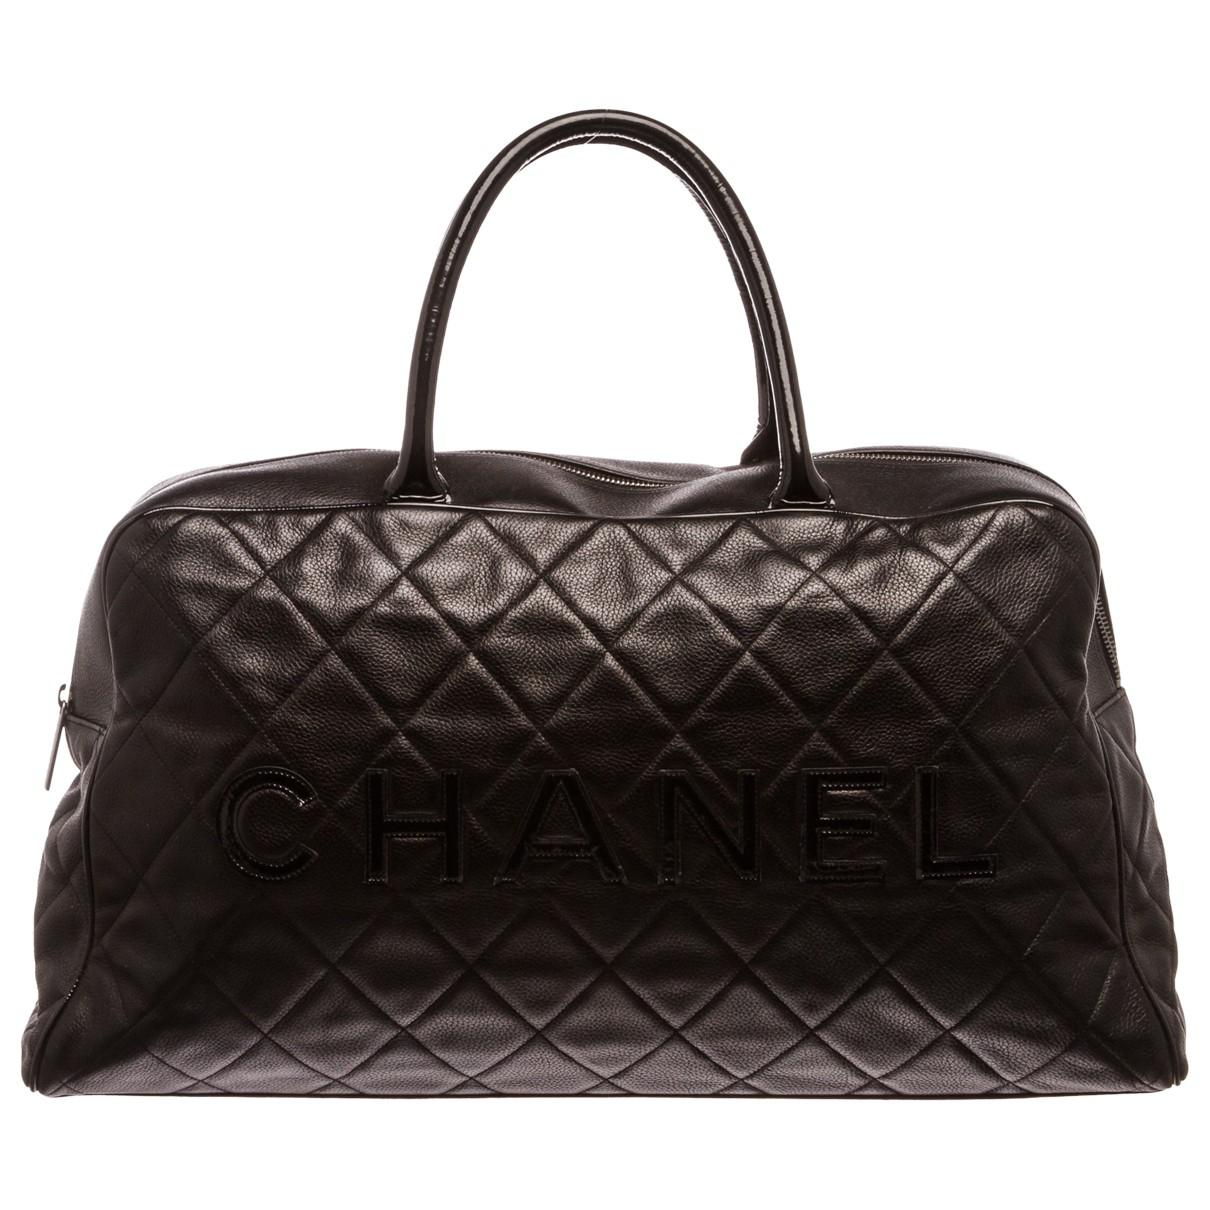 Chanel Pre-owned - Leather 48h bag RnfOf